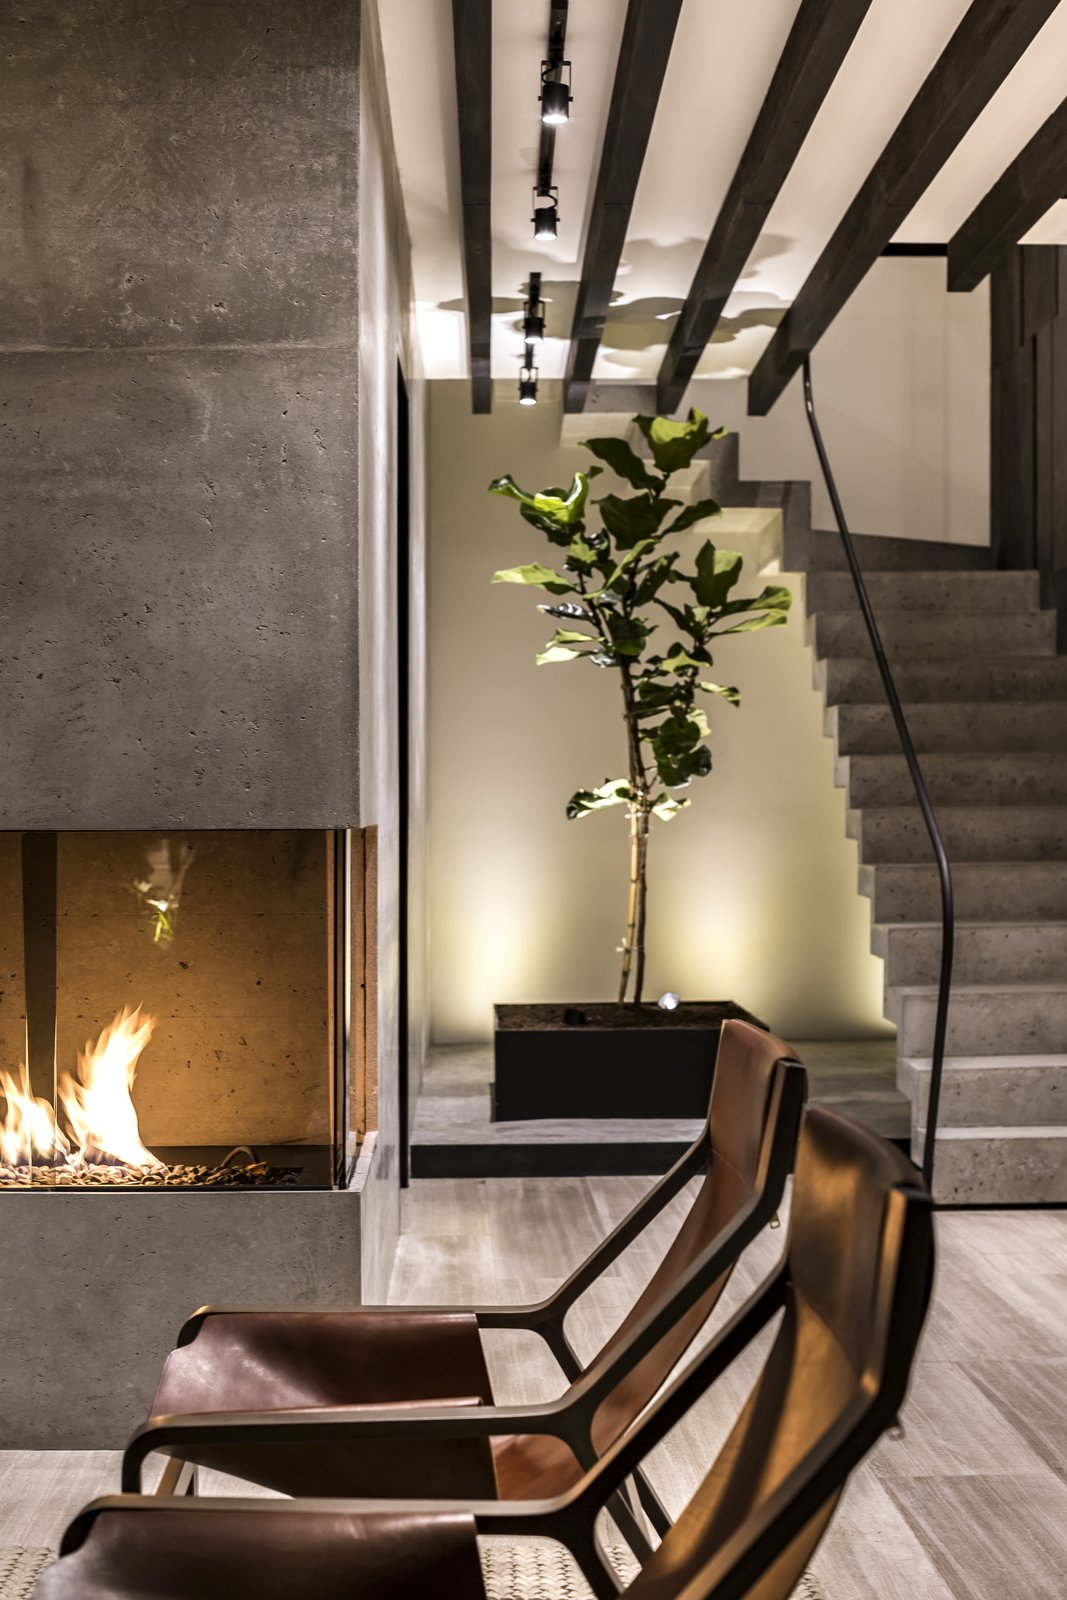 The fireplace creates an interesting game of lights and shadows